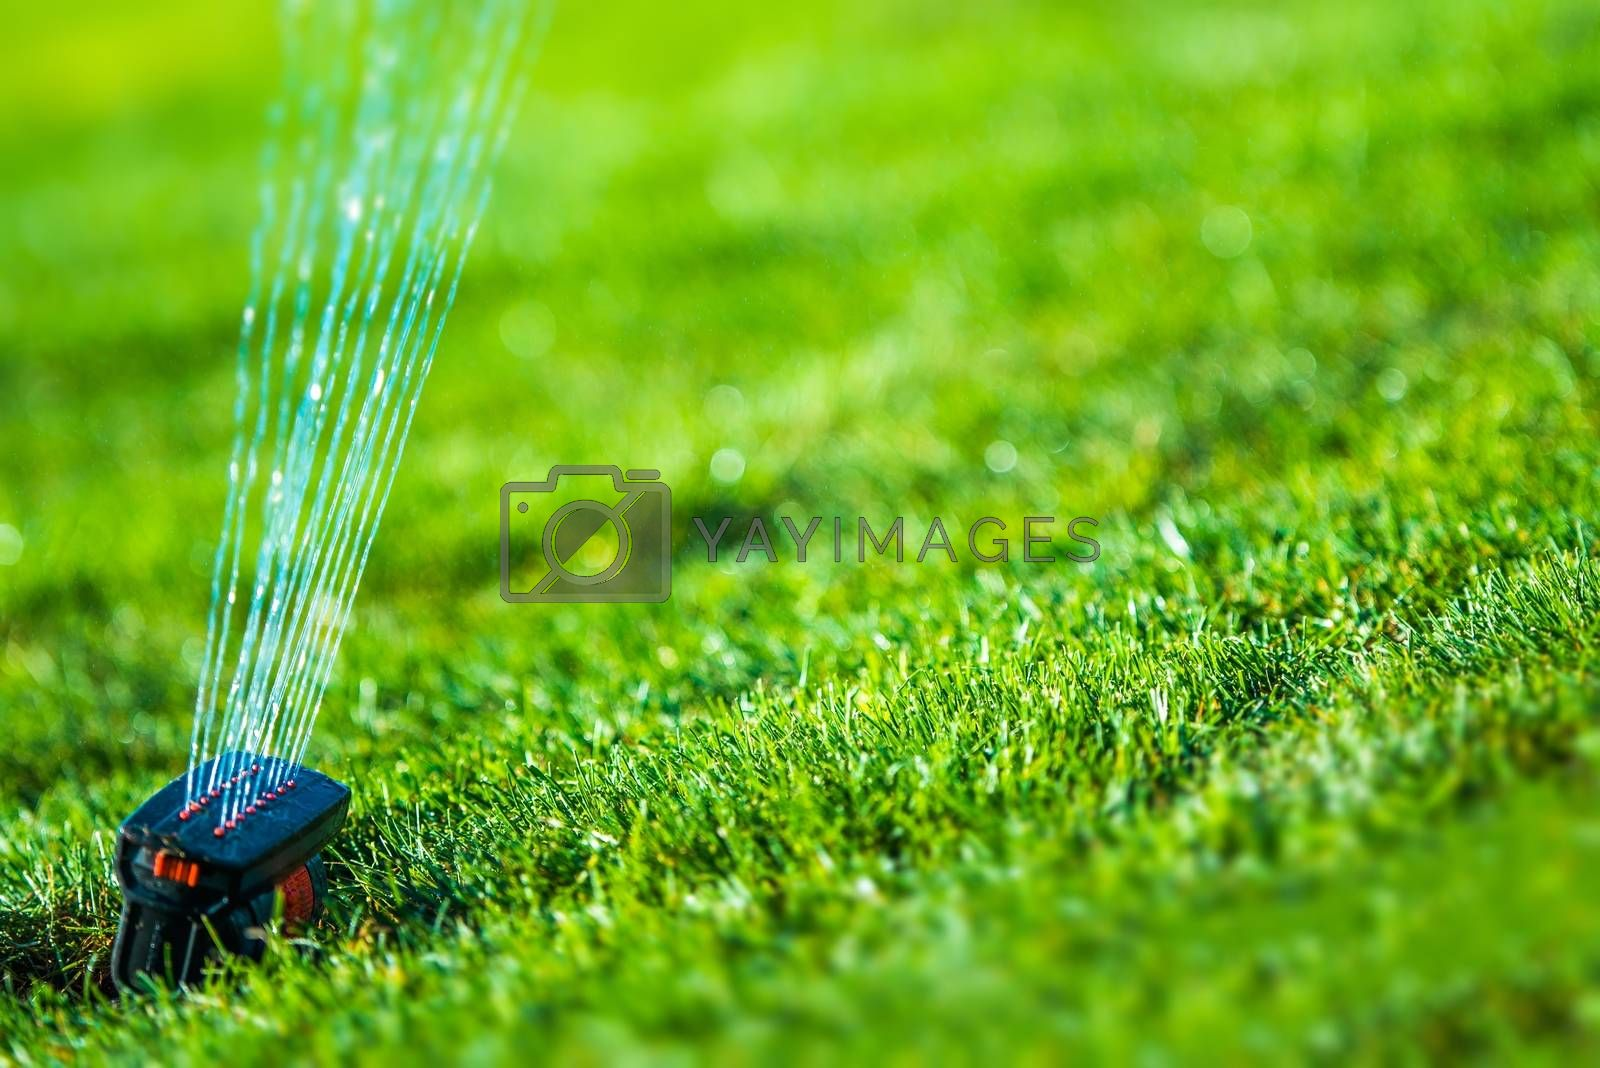 Royalty free image of Garden Grass Sprinkler by welcomia